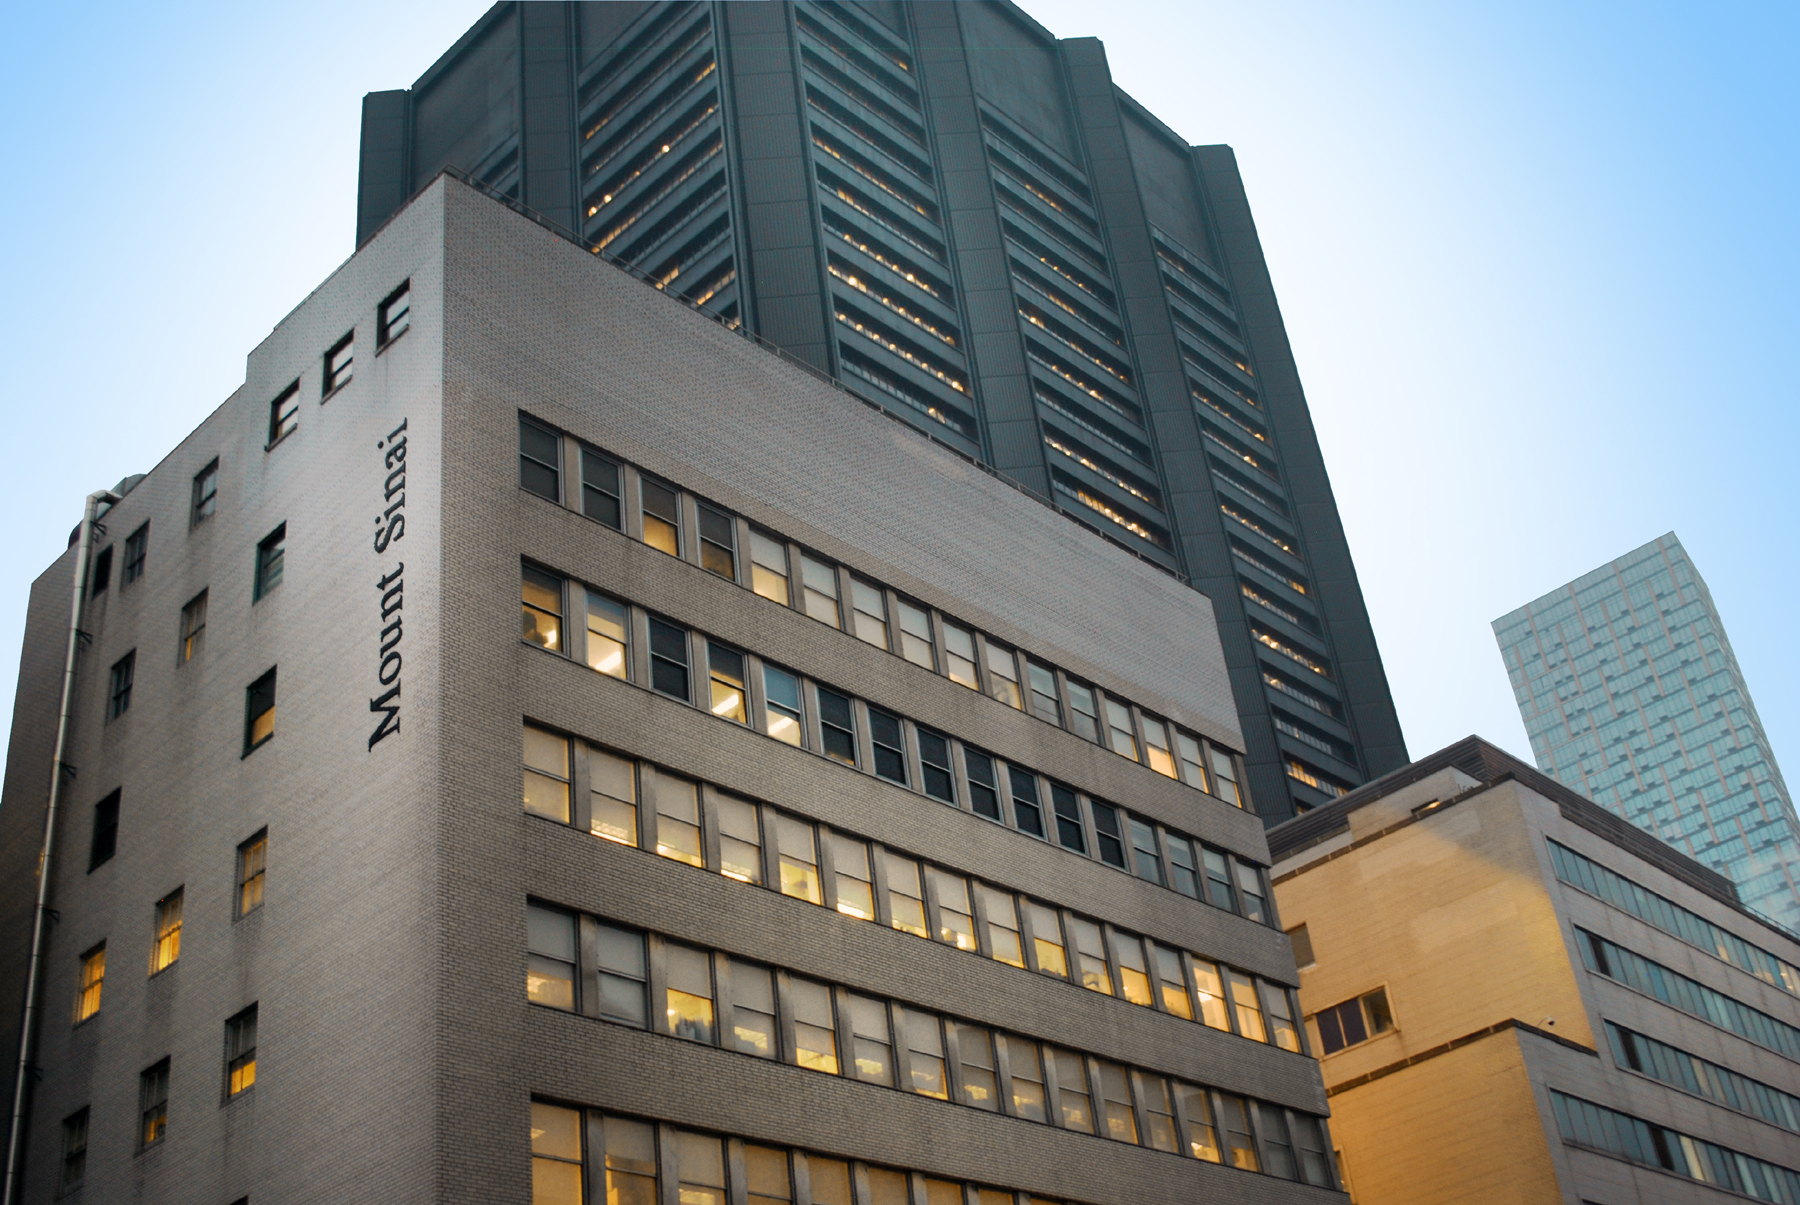 Mount Sinai Hospital (New York City).